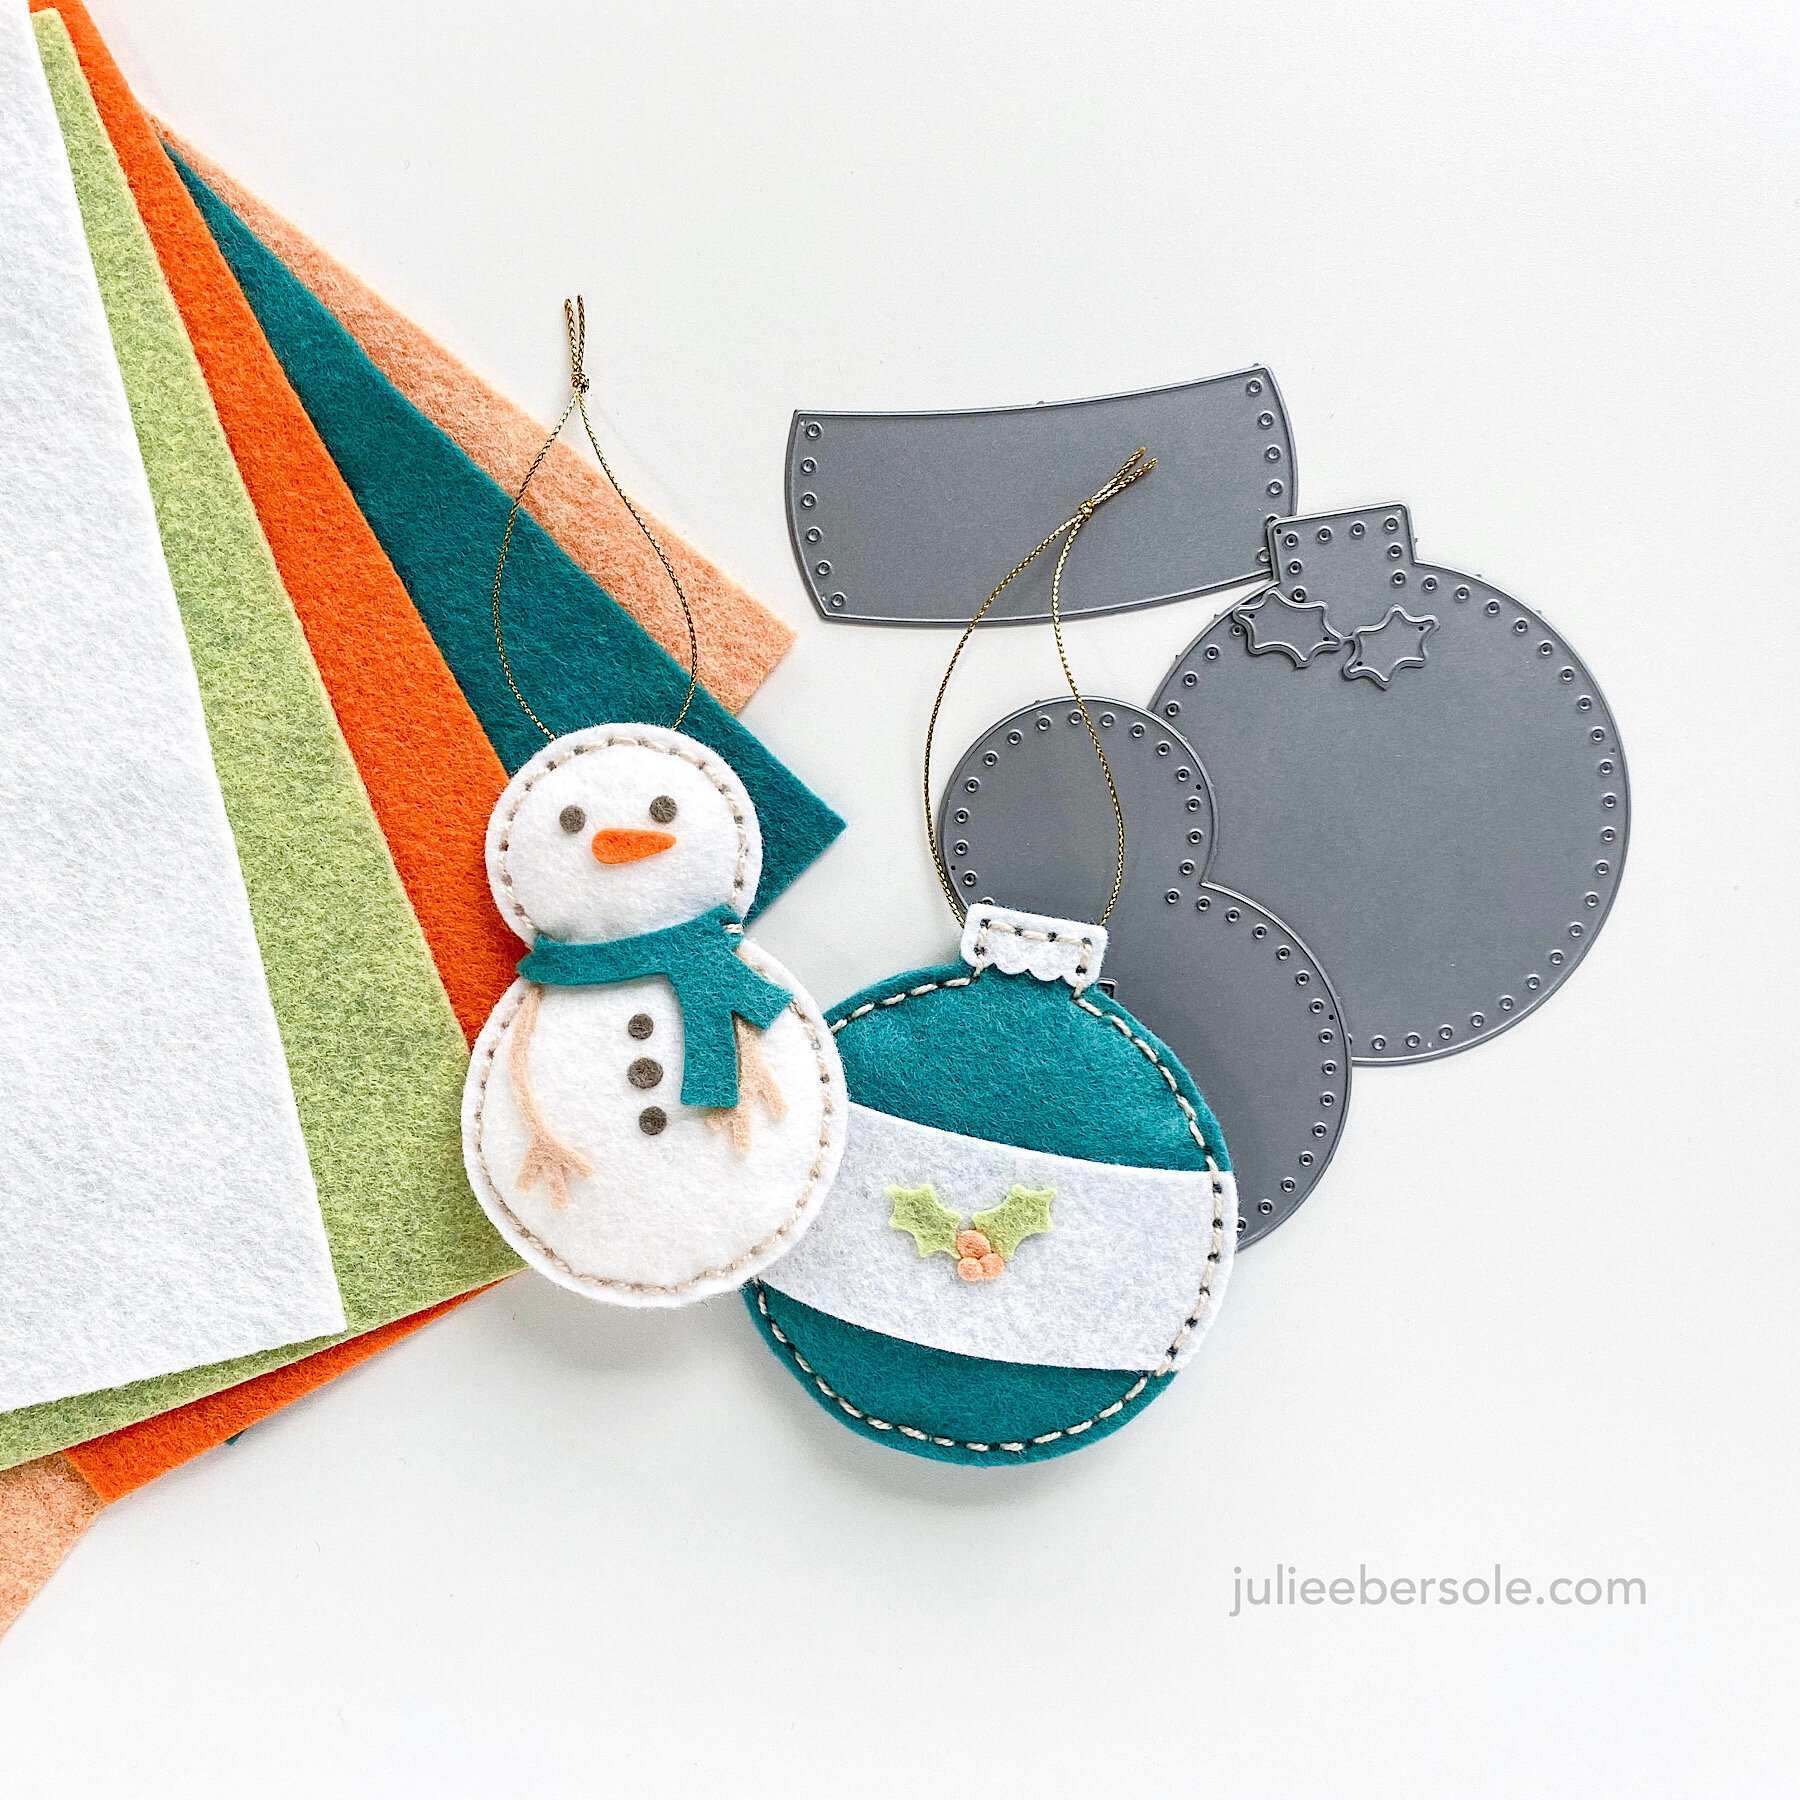 Feat.  Sew Cute Snowman Die Set  |  Sew Cute Ornament Die Set  |  The Color Pop Collection, Essentials By Ellen Wool Felt  |  The Arctic Collection, Essentials By Ellen Wool Felt  |  The Bear Collection, Essentials By Ellen Wool Felt